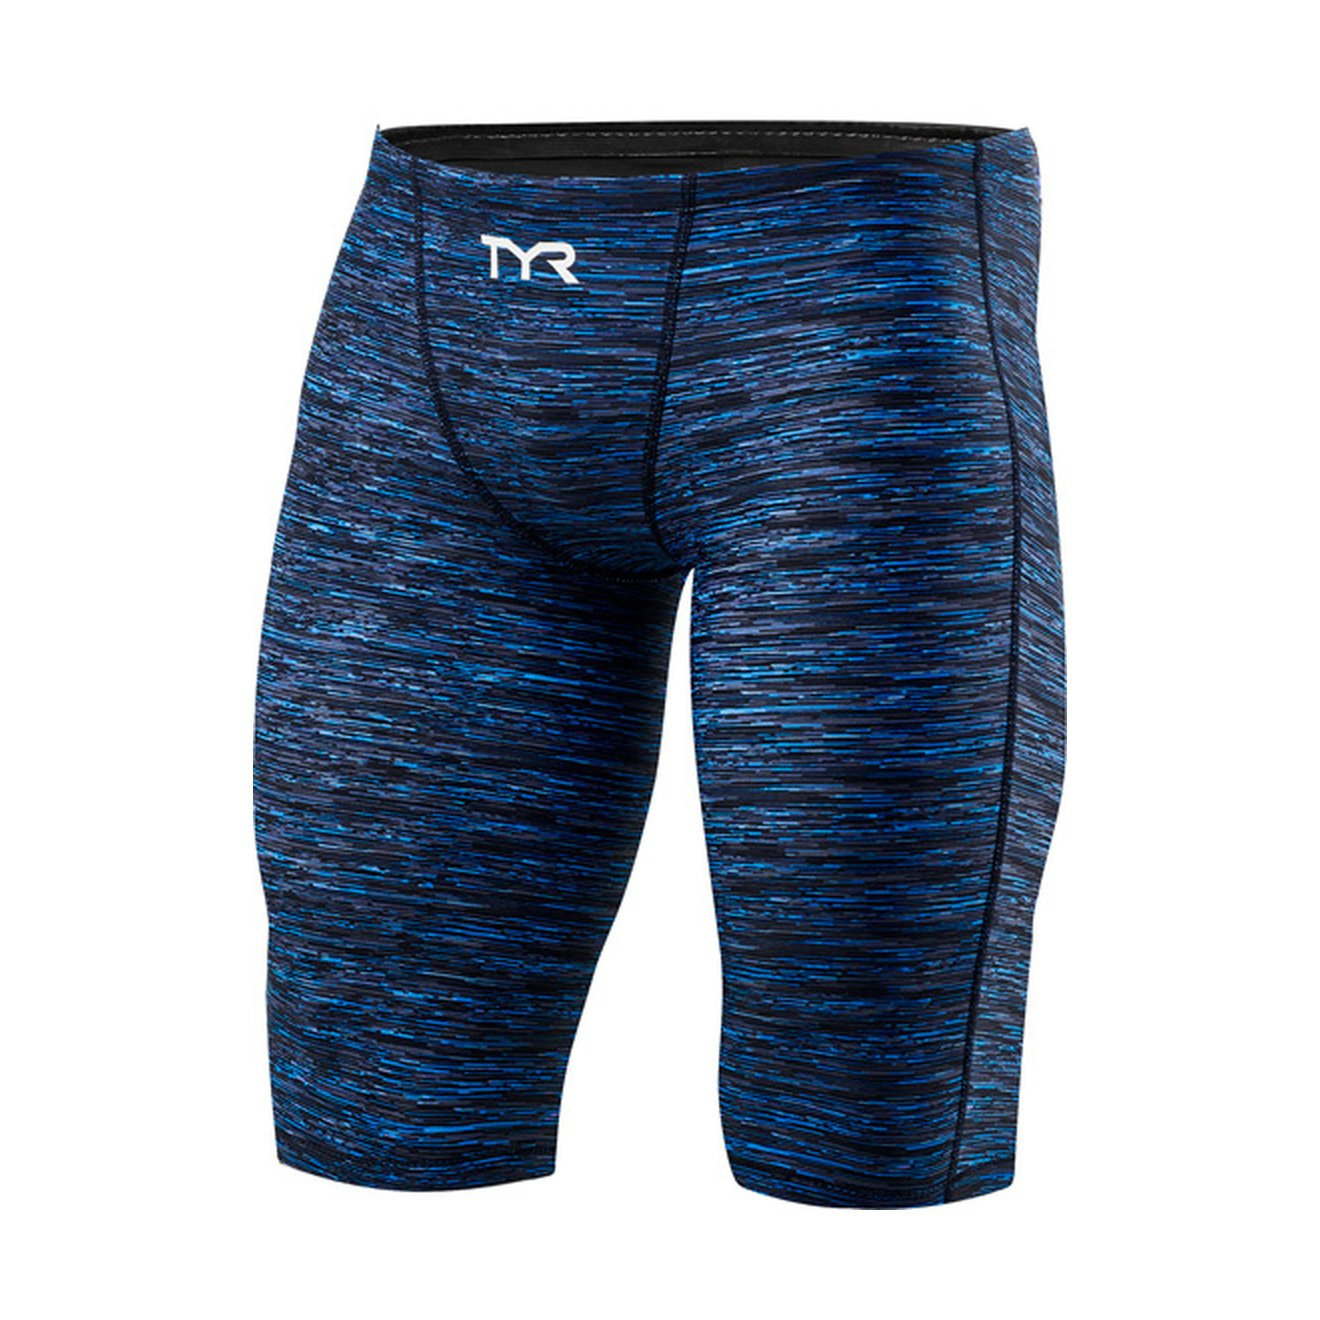 TYR Thresher Baja Jammer Men Blau 2018 Badehose